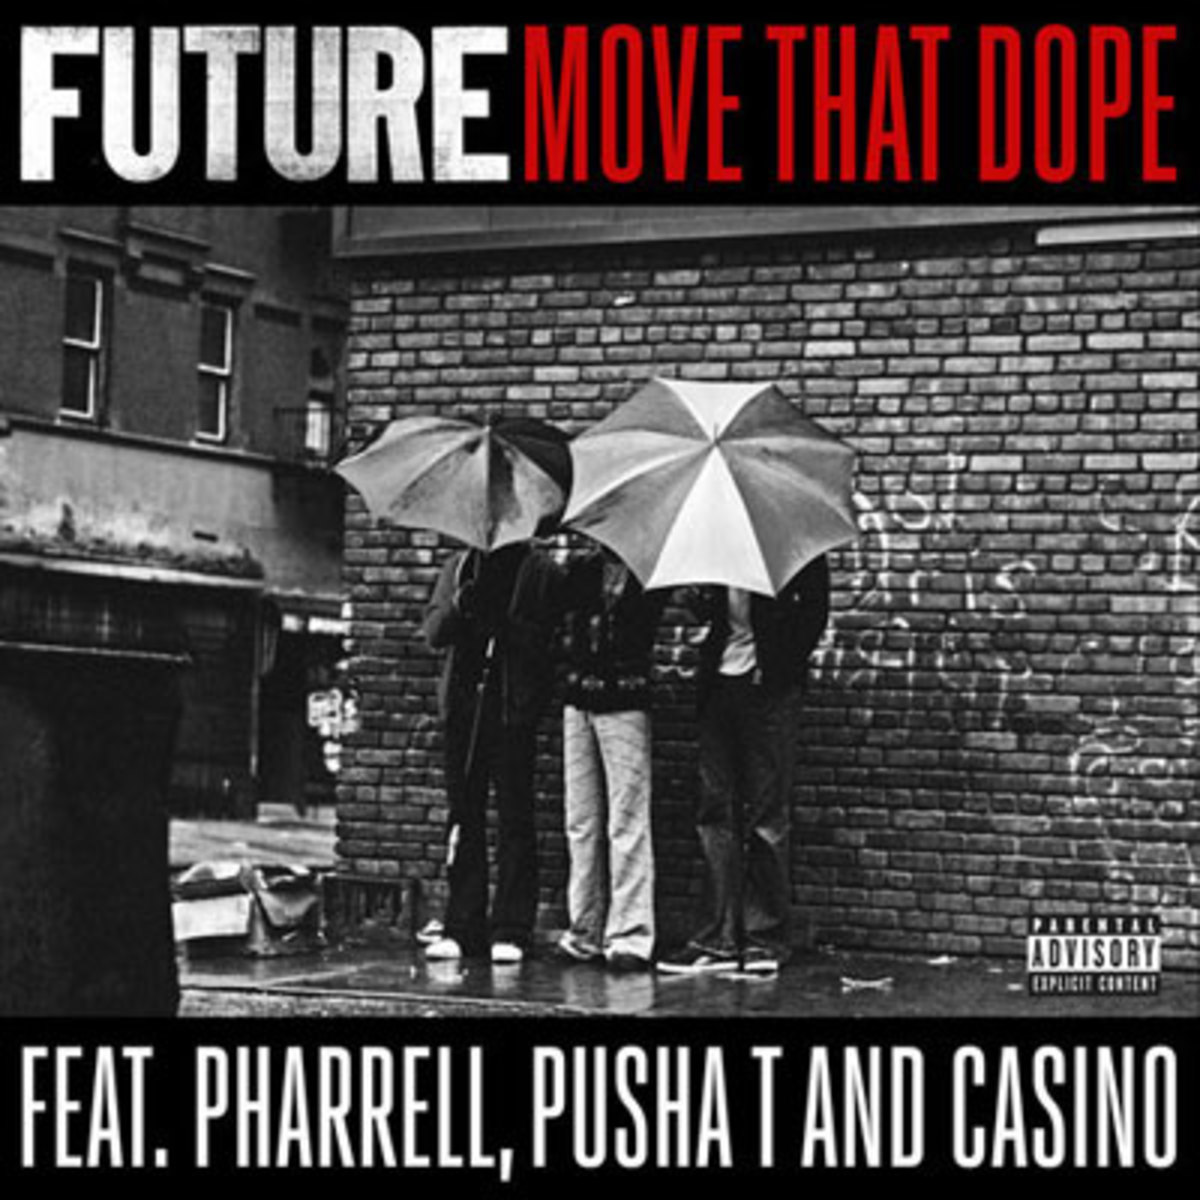 future-movethatdope.jpg